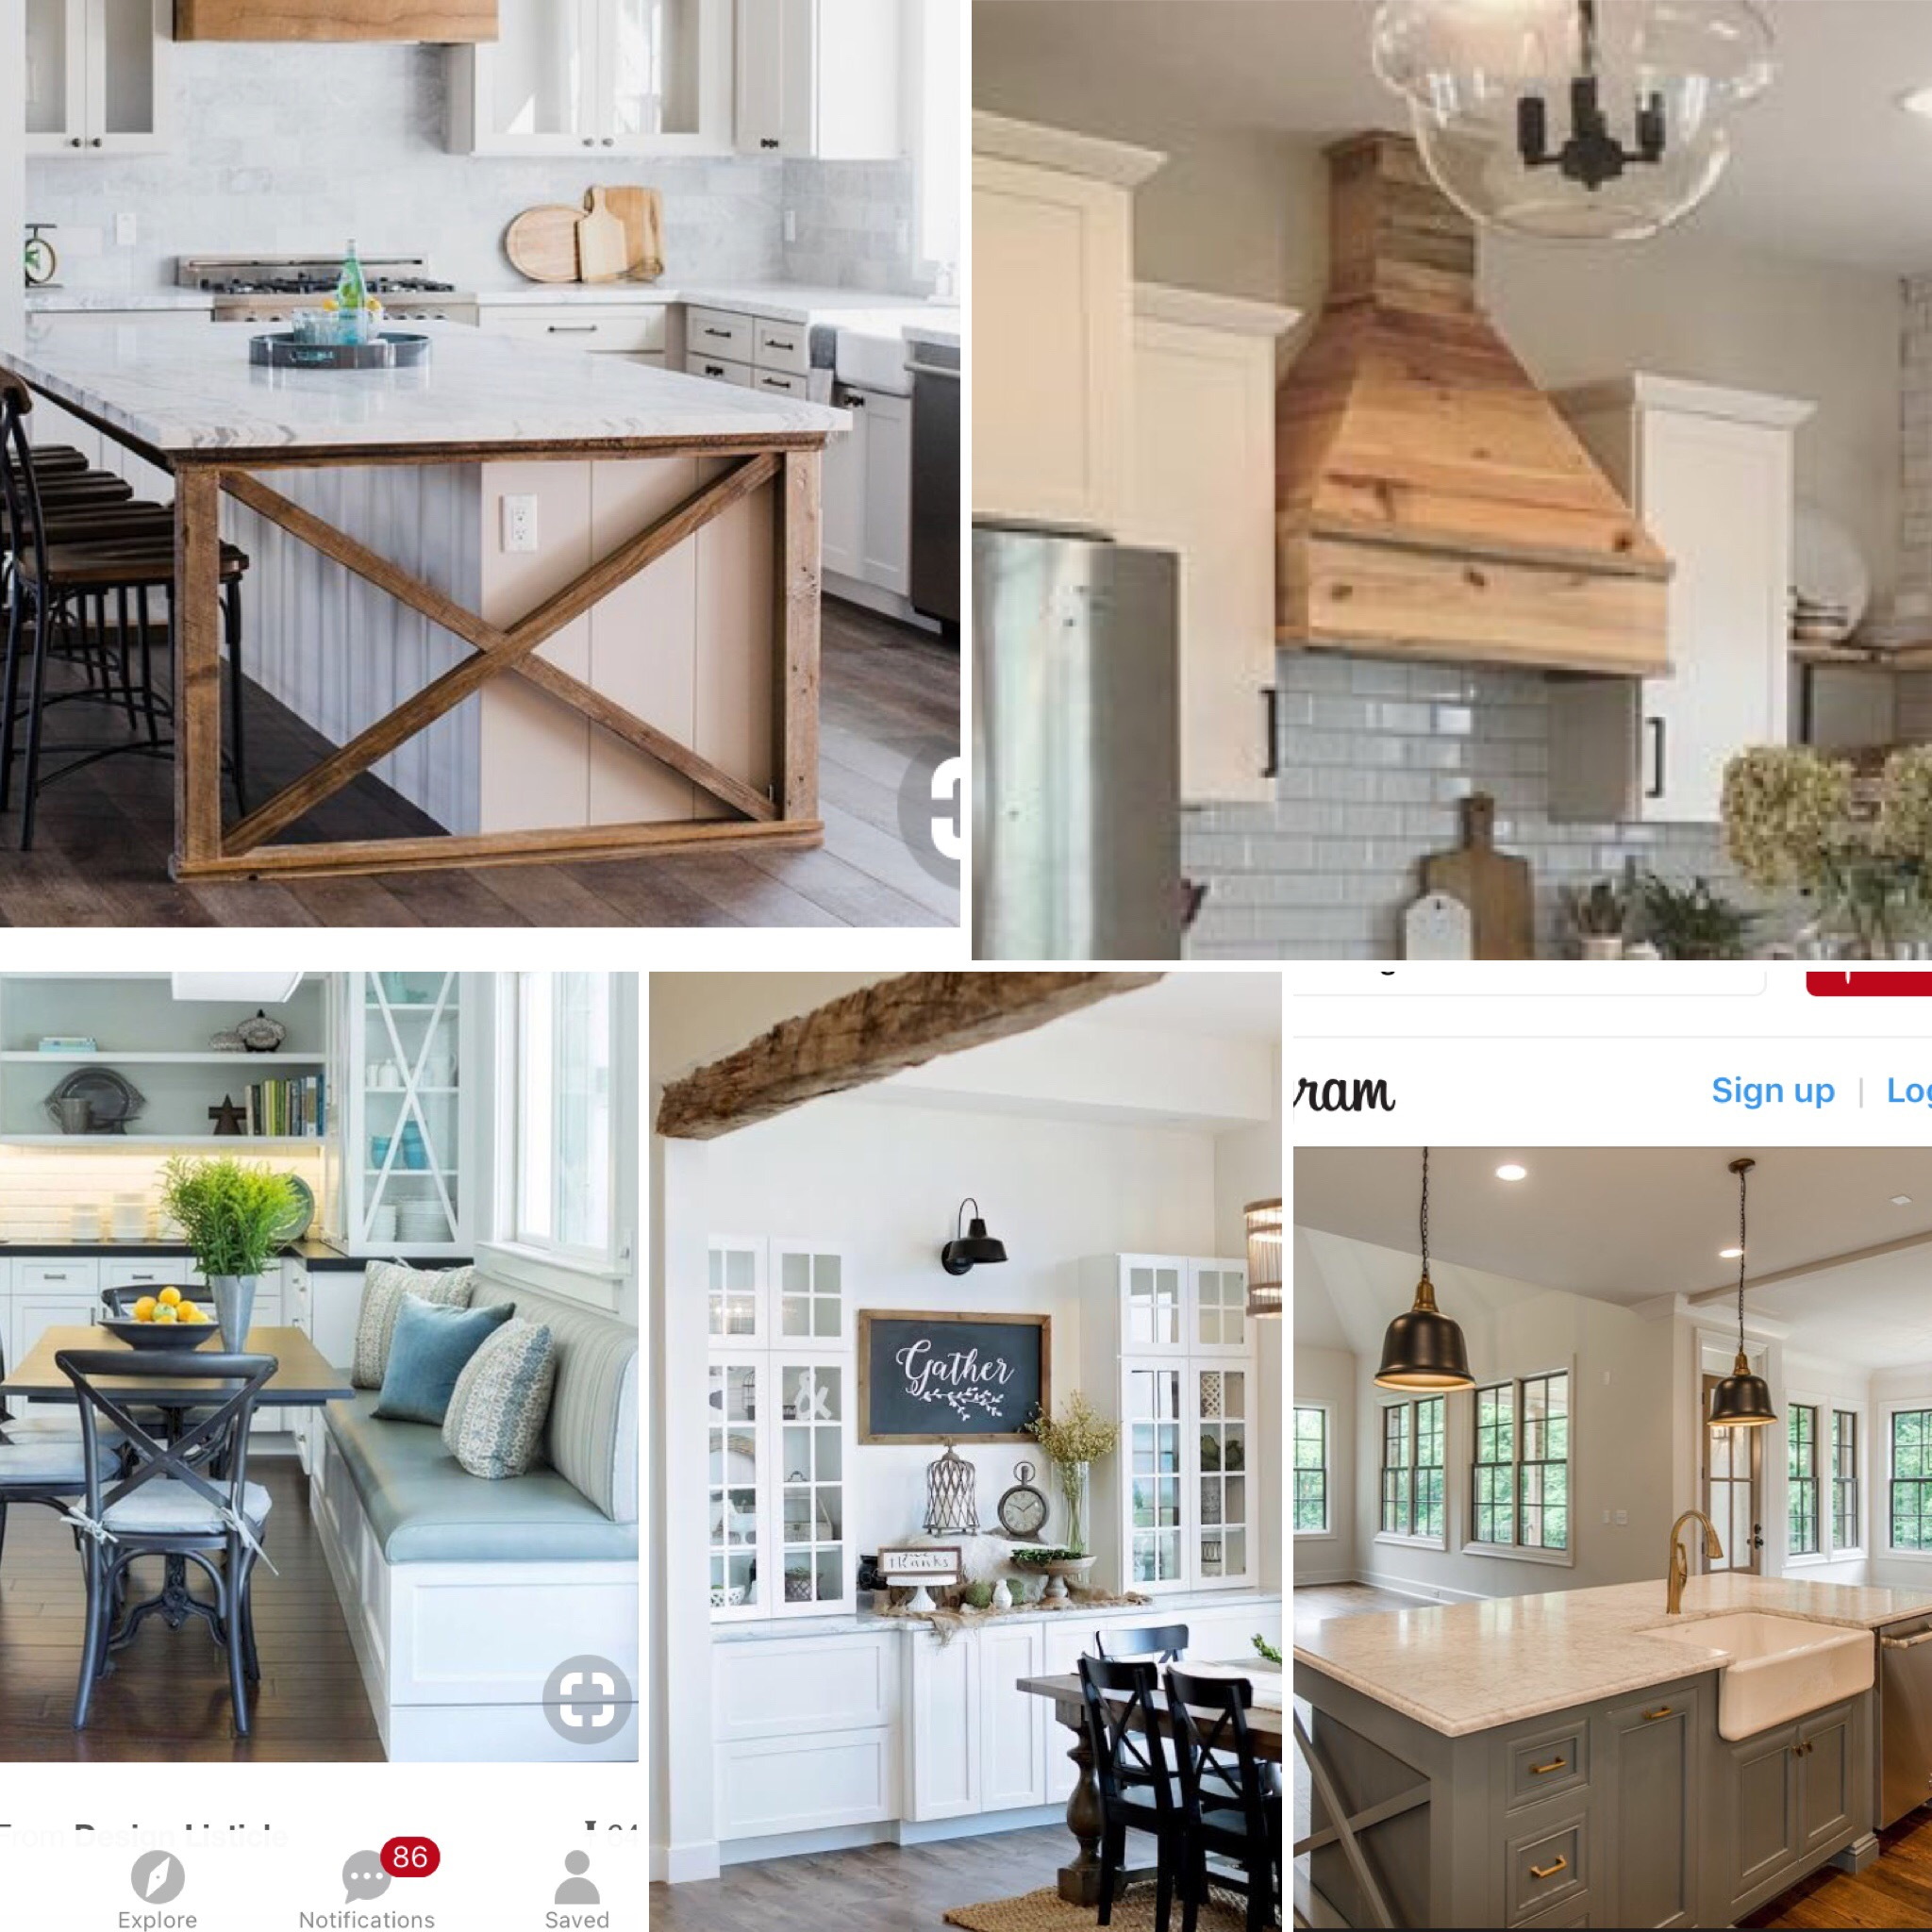 Kitchen Break-fast Nook - Shaker cabinets, bold island, custom range, built in seating, I could go on and on, remember this is a sneak peek!